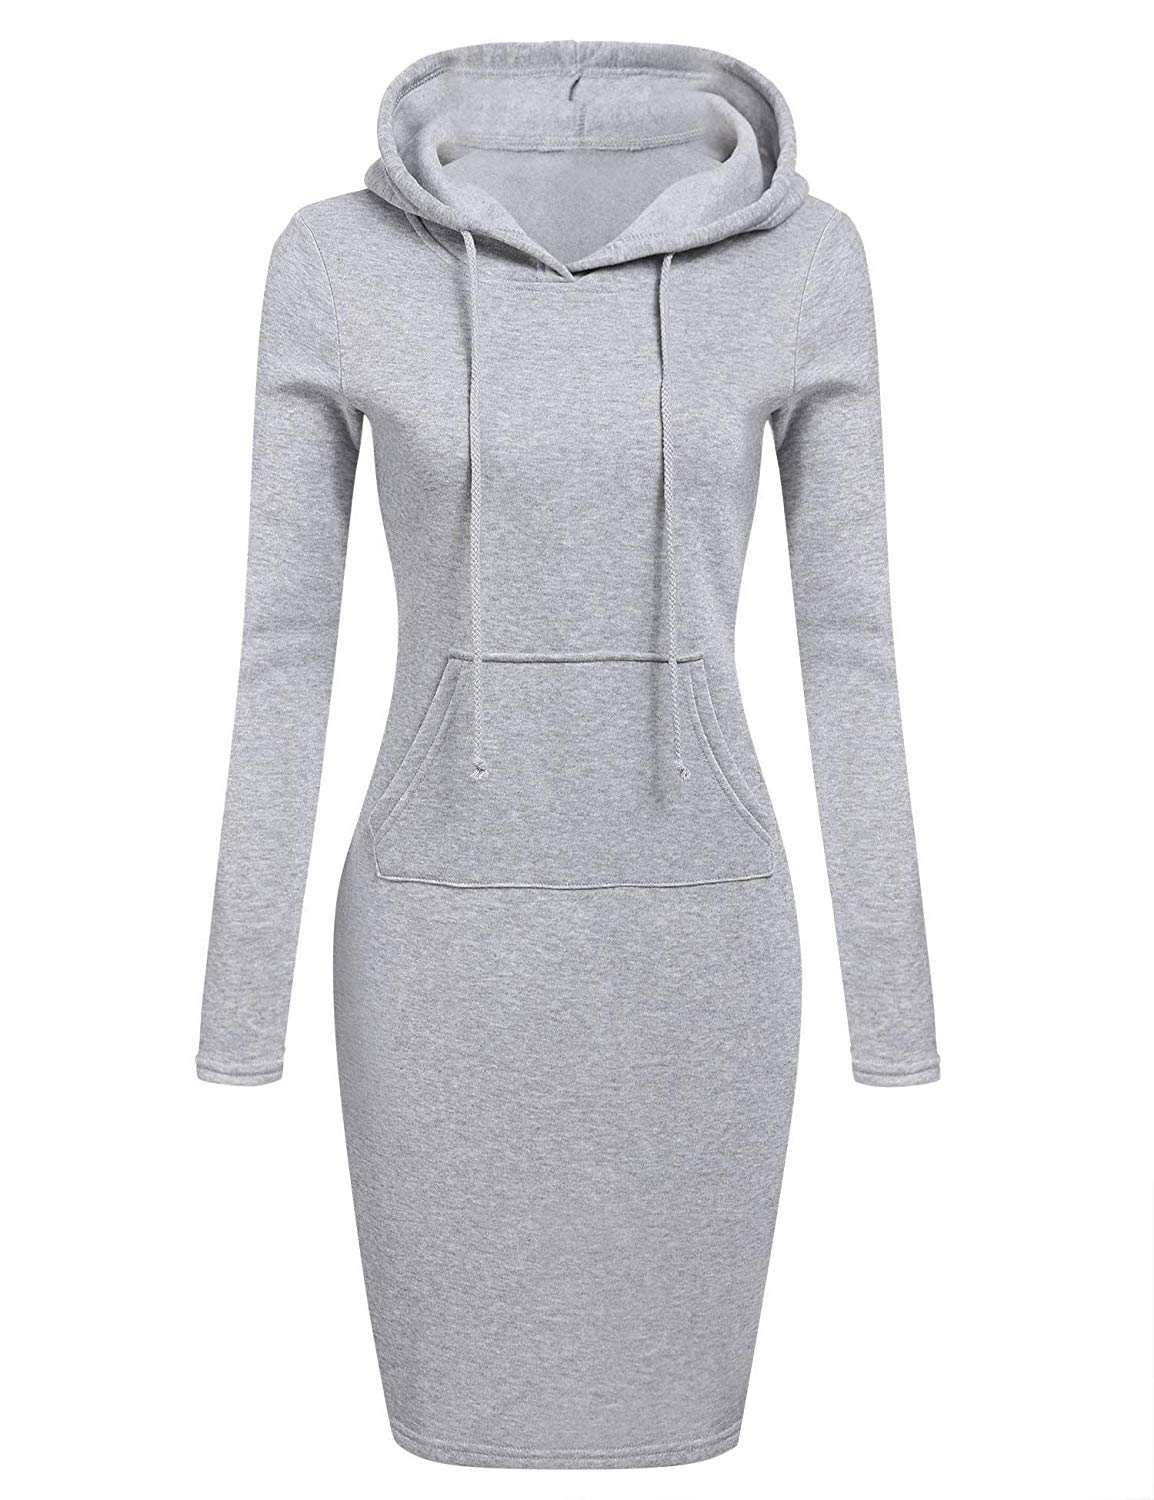 Dethler Hoodies Dress for Women Plus Size with Pockets Cool Womens Hoodies